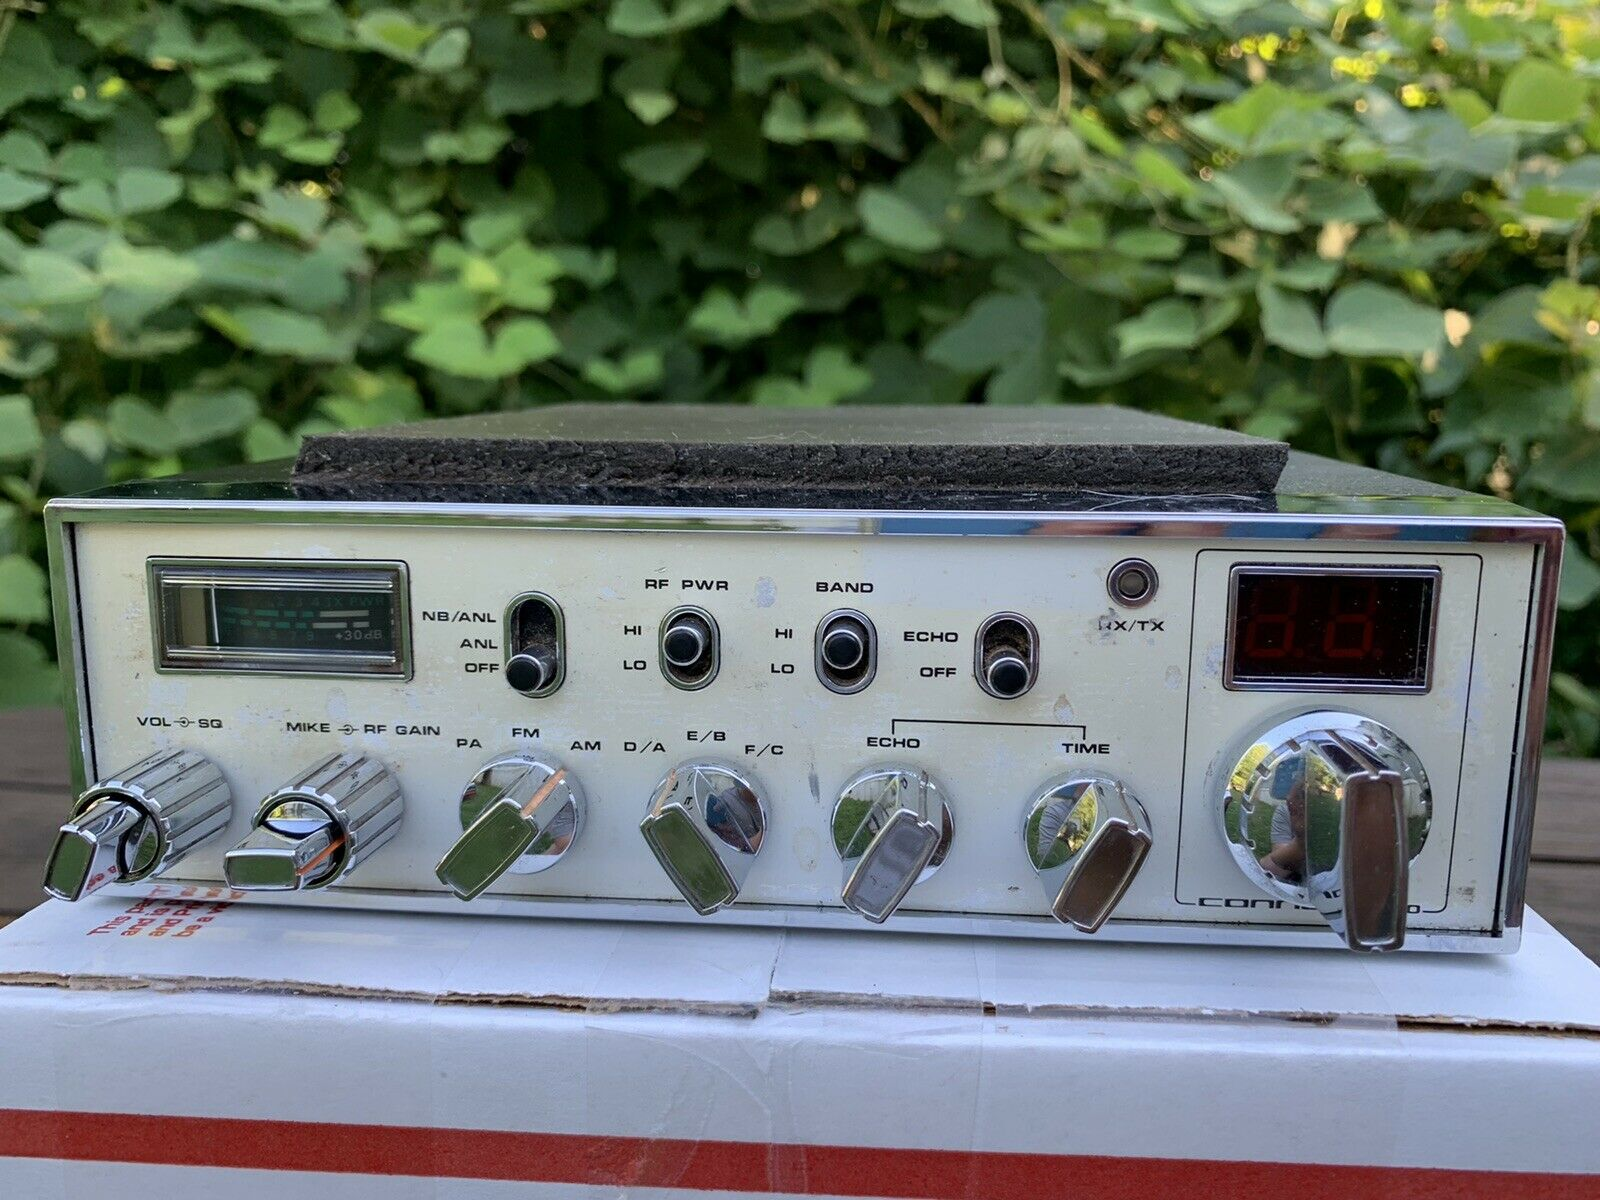 Connex 3300 CB/HAM Radio- WORKING CONDITION. Available Now for 375.00